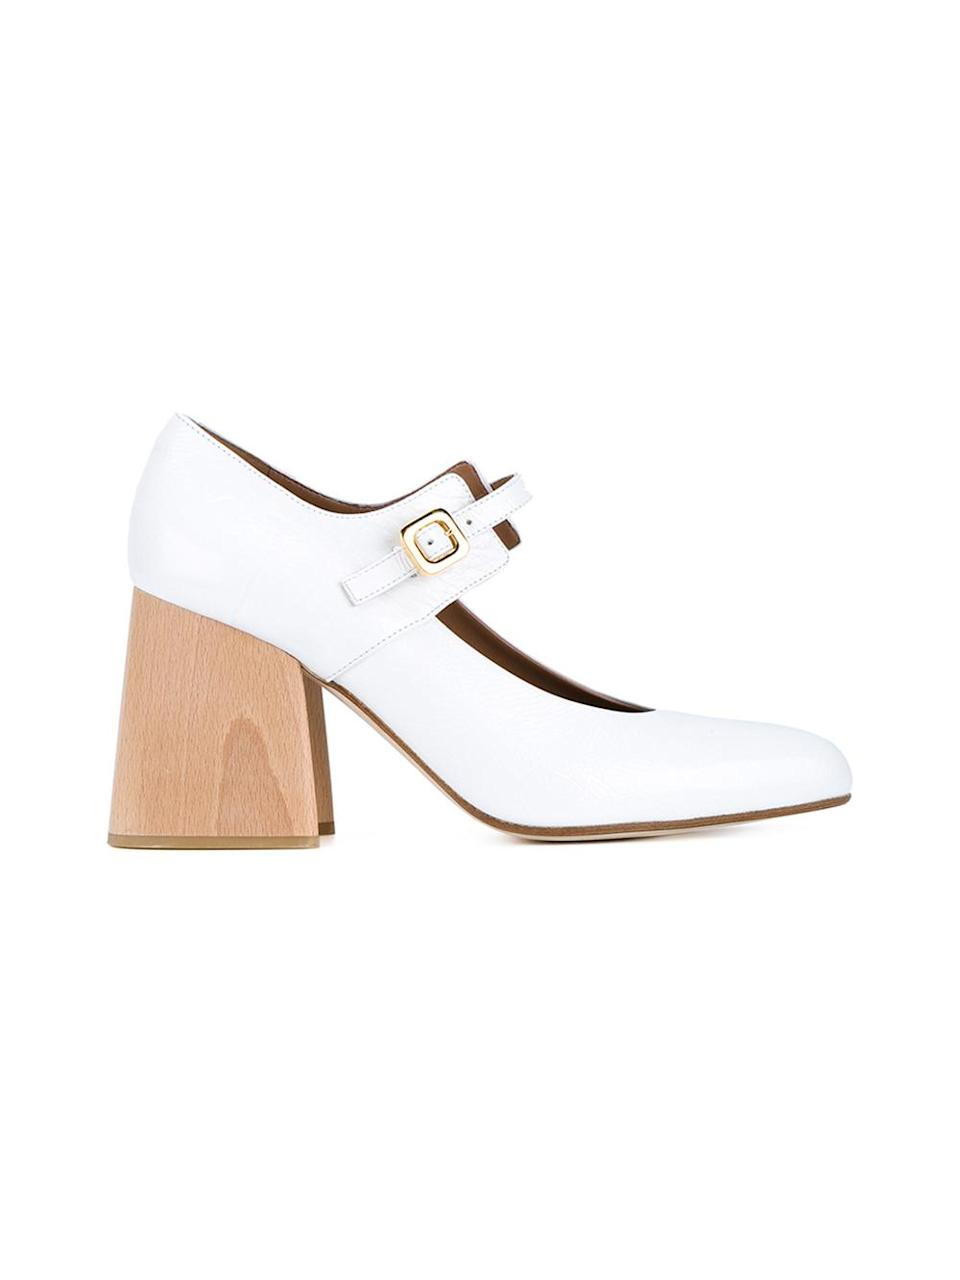 "<p>Patent leather Mary Janes with wooden block heel, $595, <a href=""http://www.brownsfashion.com/product/LS7G52870002/134/patent-leather-mary-janes-with-wooden-block-heel"" rel=""nofollow noopener"" target=""_blank"" data-ylk=""slk:Brownsfashion.com"" class=""link rapid-noclick-resp"">Brownsfashion.com</a></p>"